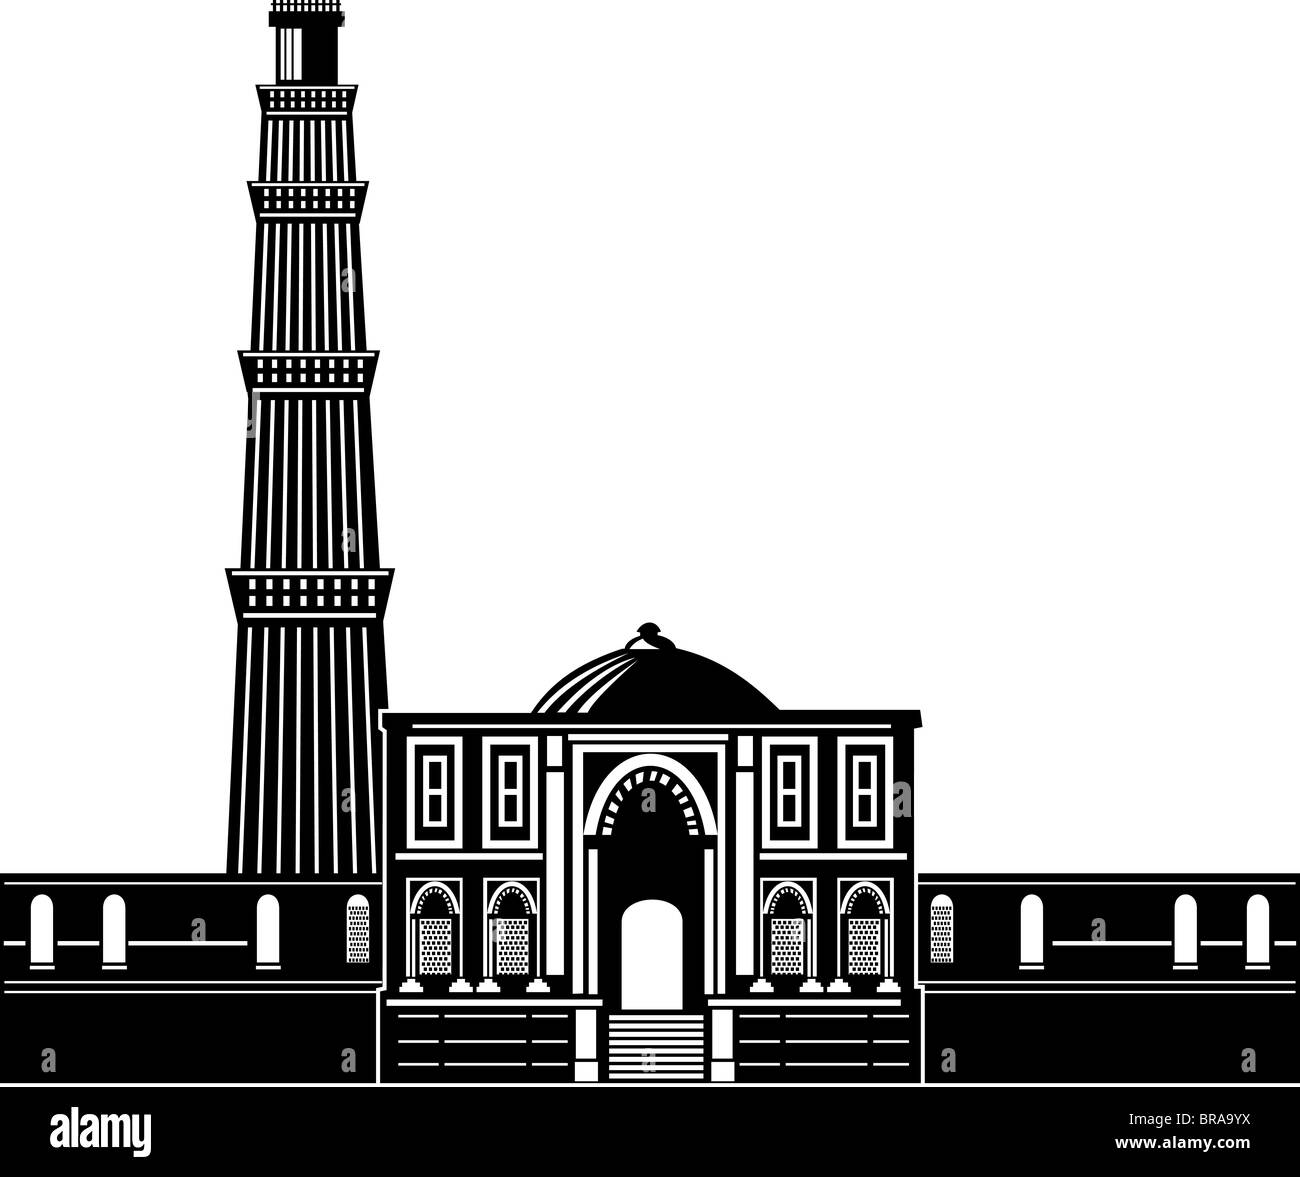 Illustration of the qutab minar in delhi is among the tallest and famous towers in the